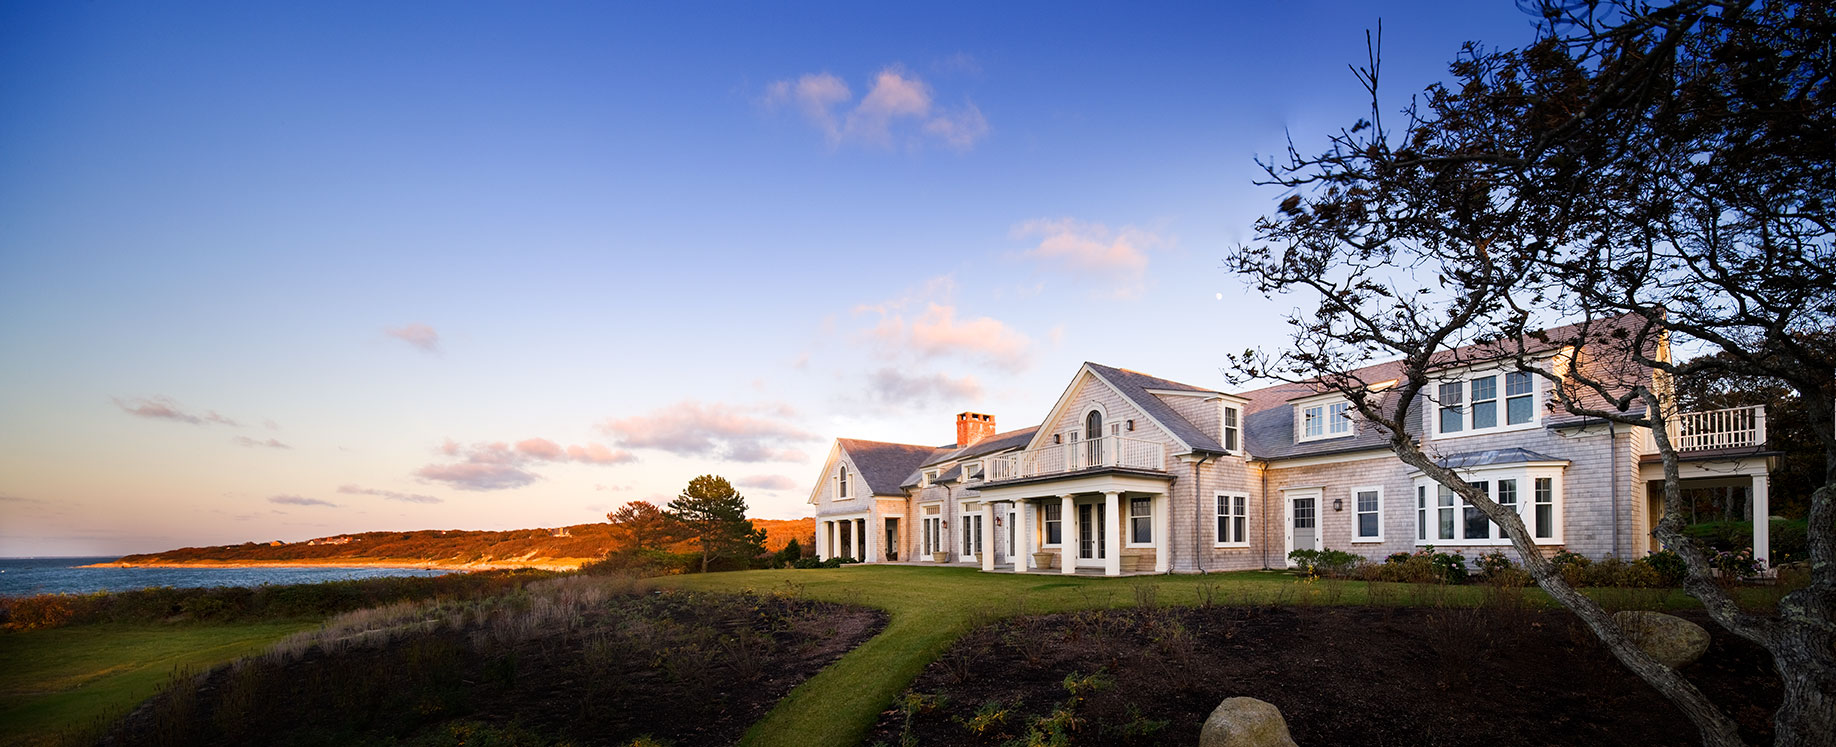 """""""A New Residence - West Tisbury"""" by Ferguson & Shamamian Architects - Residential Over 5,000 SF"""